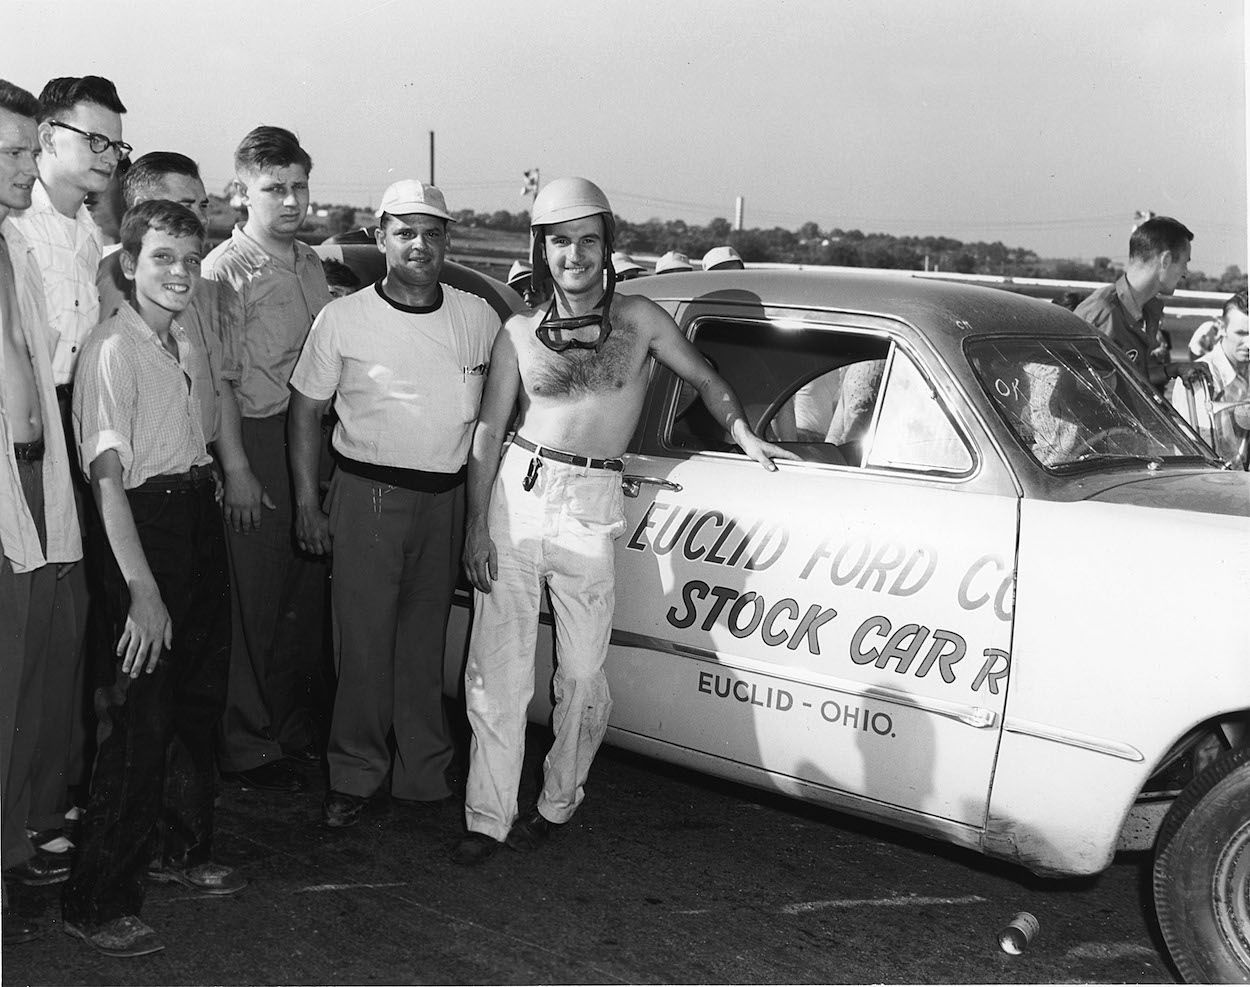 Jimmy Florian made NASCAR history in 1950 when he won a race at Daytona a shirt on his chest, which prompted a fitting nickname.